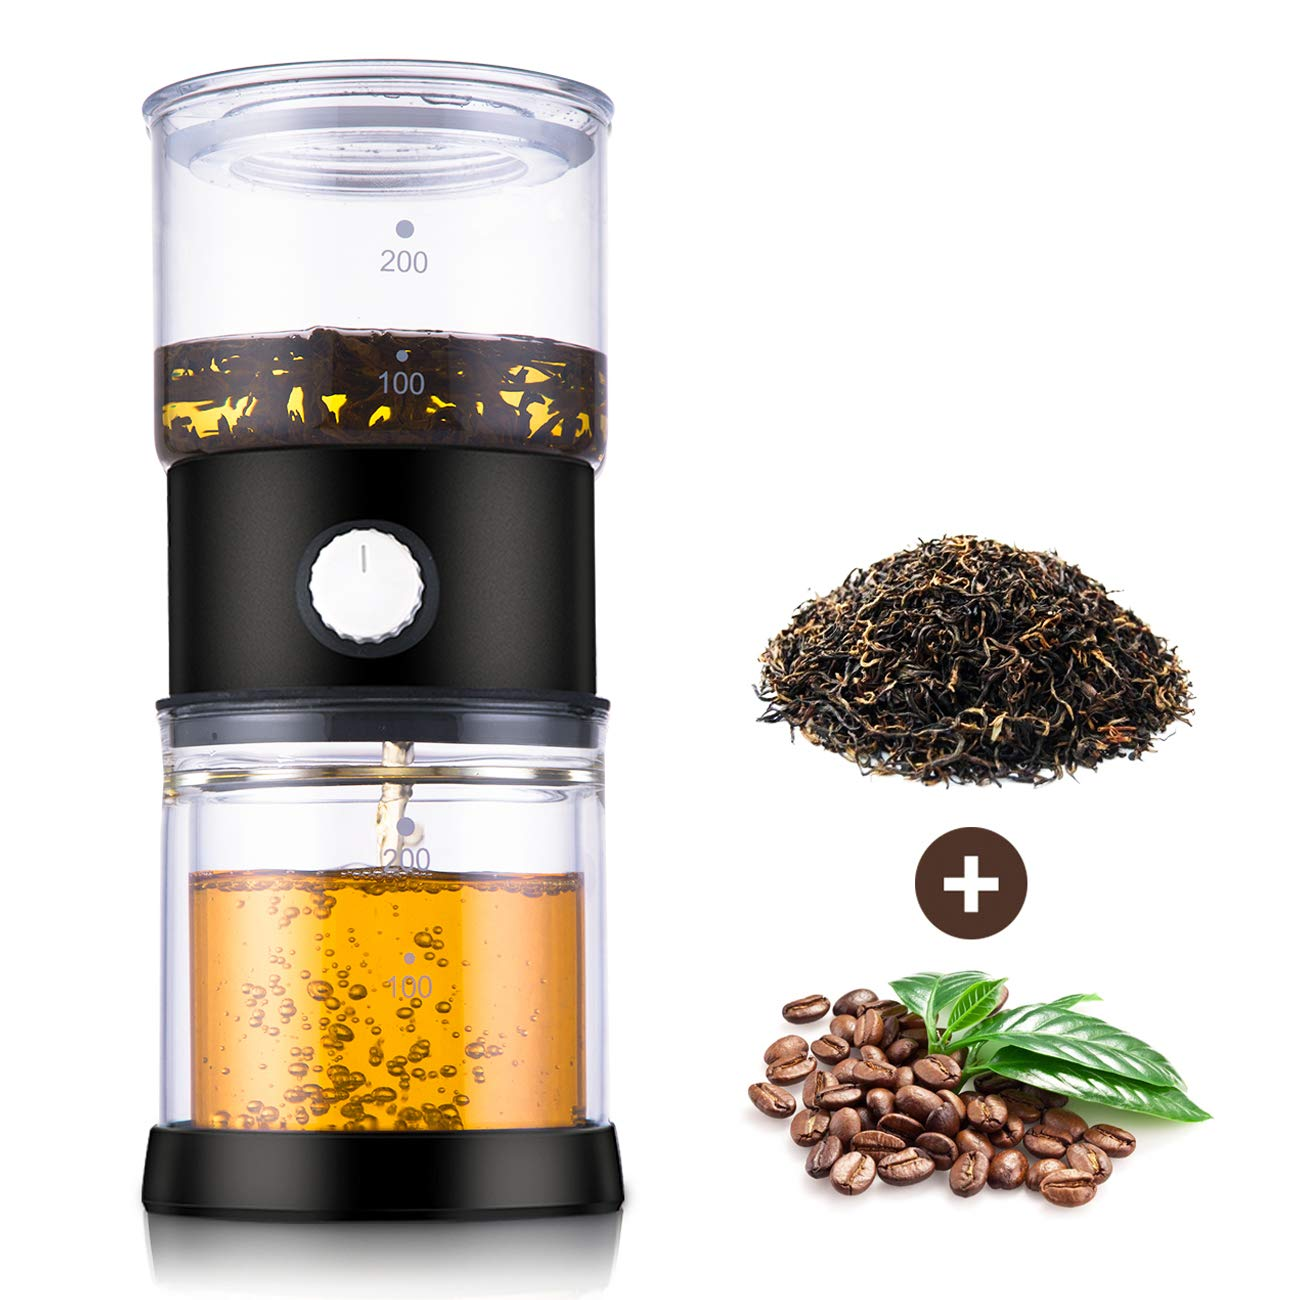 SULIVES Glass Teapot with Removable Infuser, Blooming and Loose Leaf Tea Maker Set